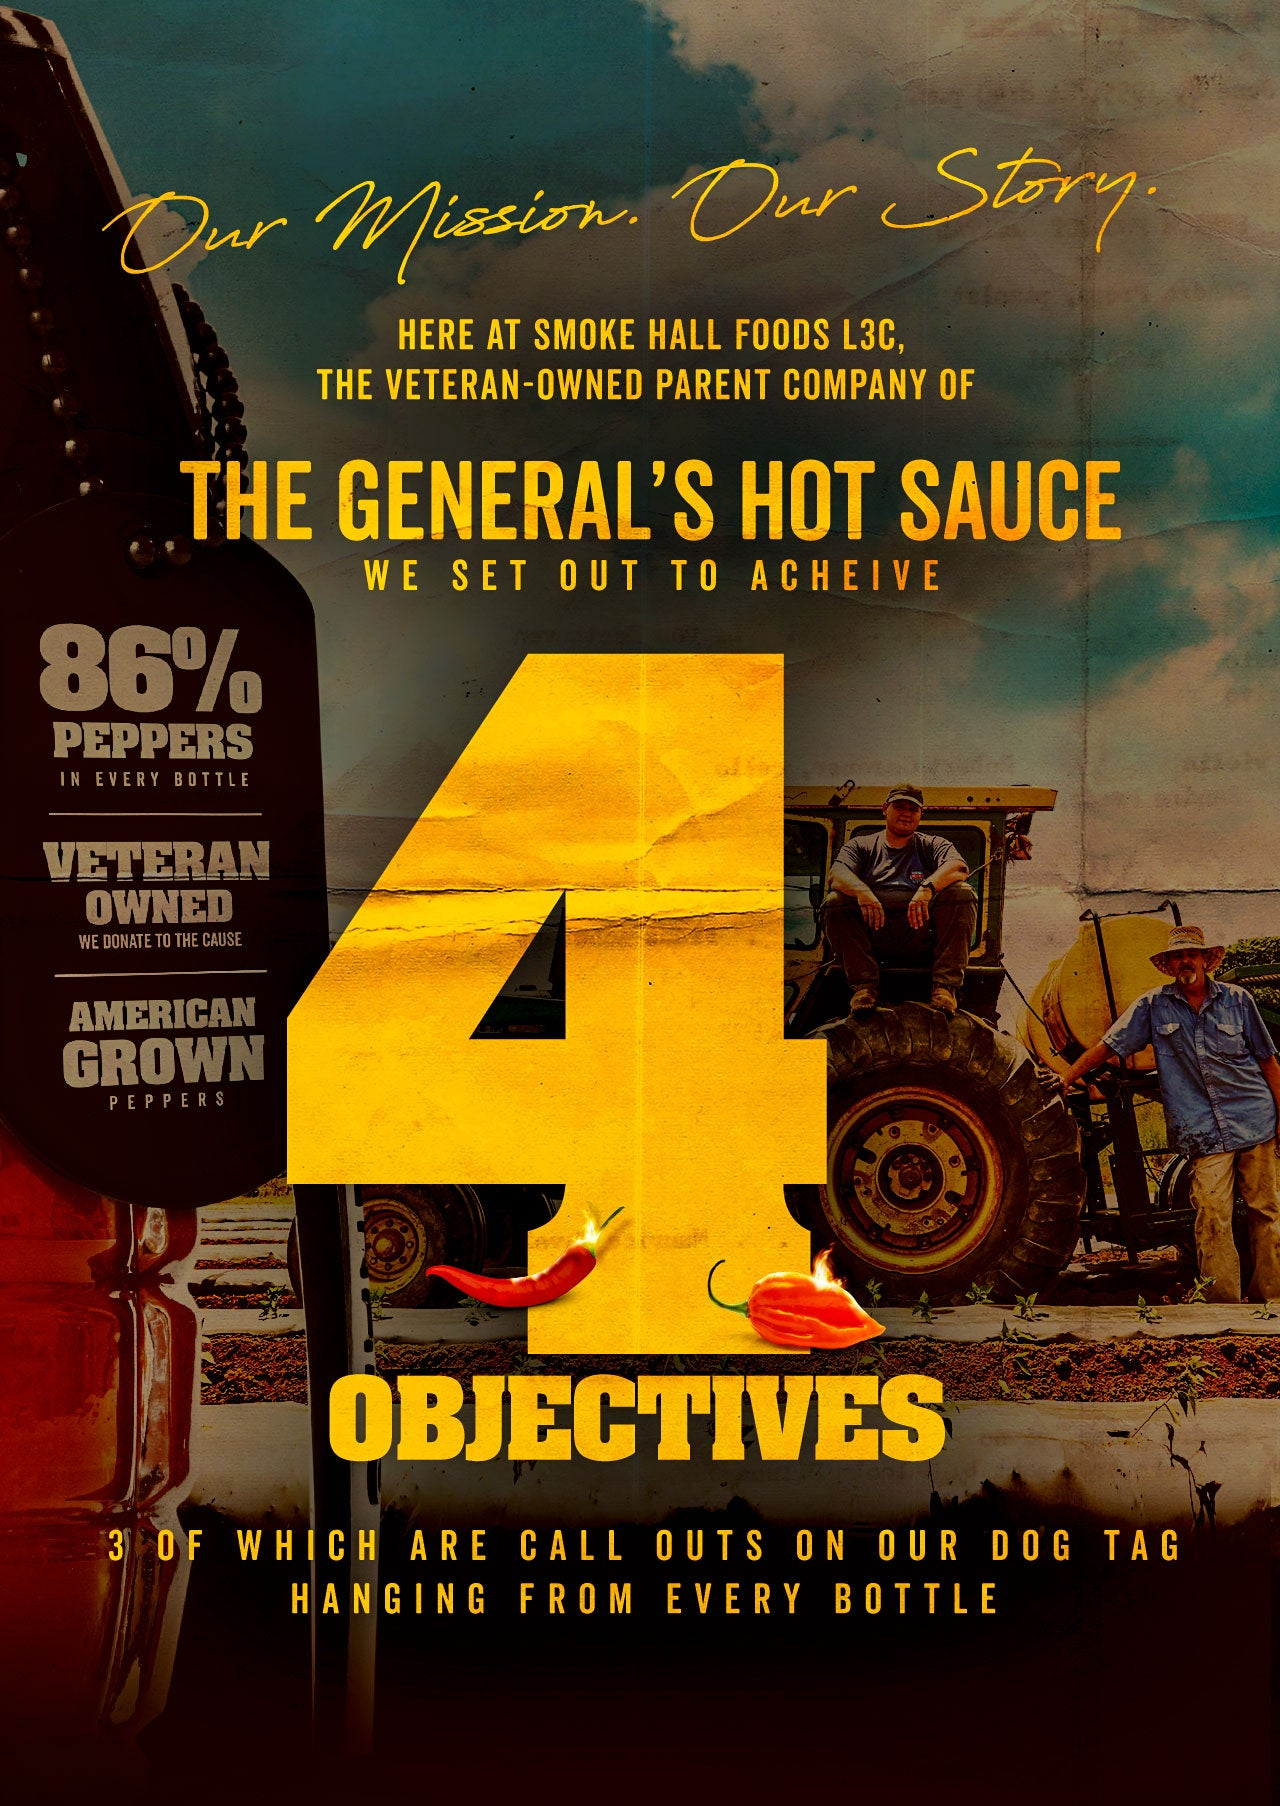 The General's Hot Sauce set out to acheive 4 objectives, 3 of which are call outs on our dog tag hanging from every bottle